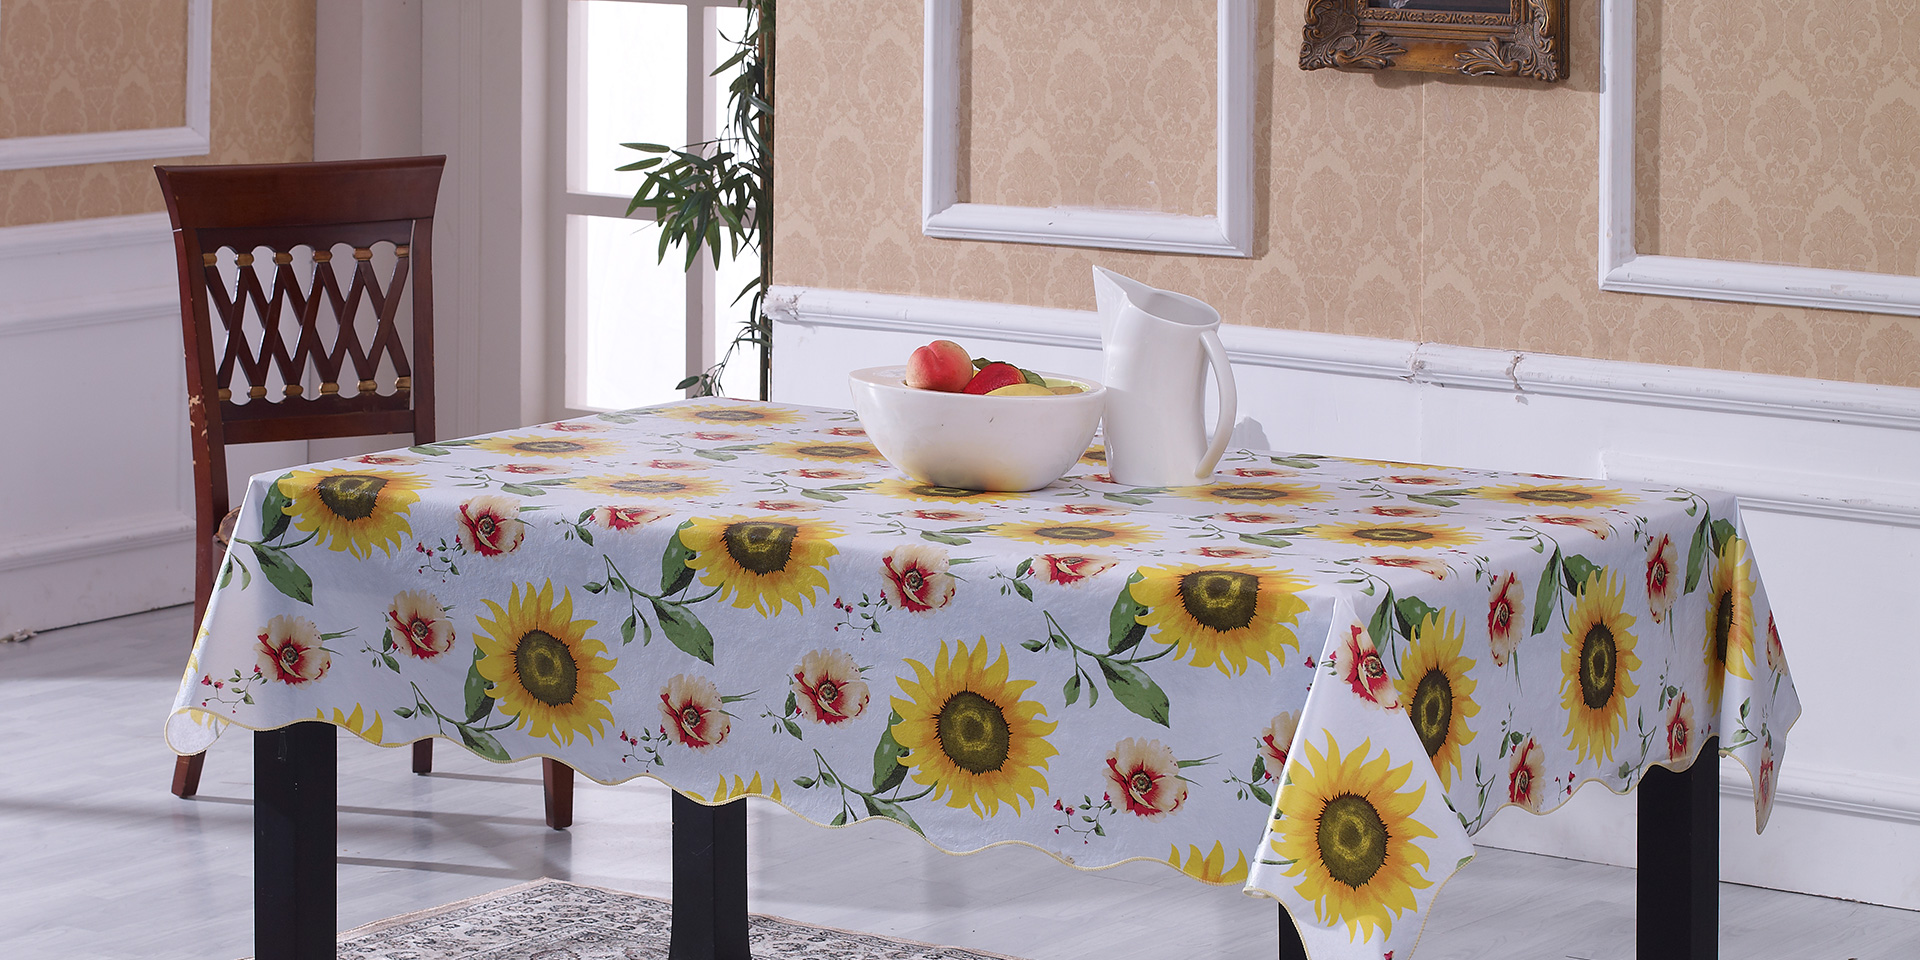 Shower curtain ,Tablecloth